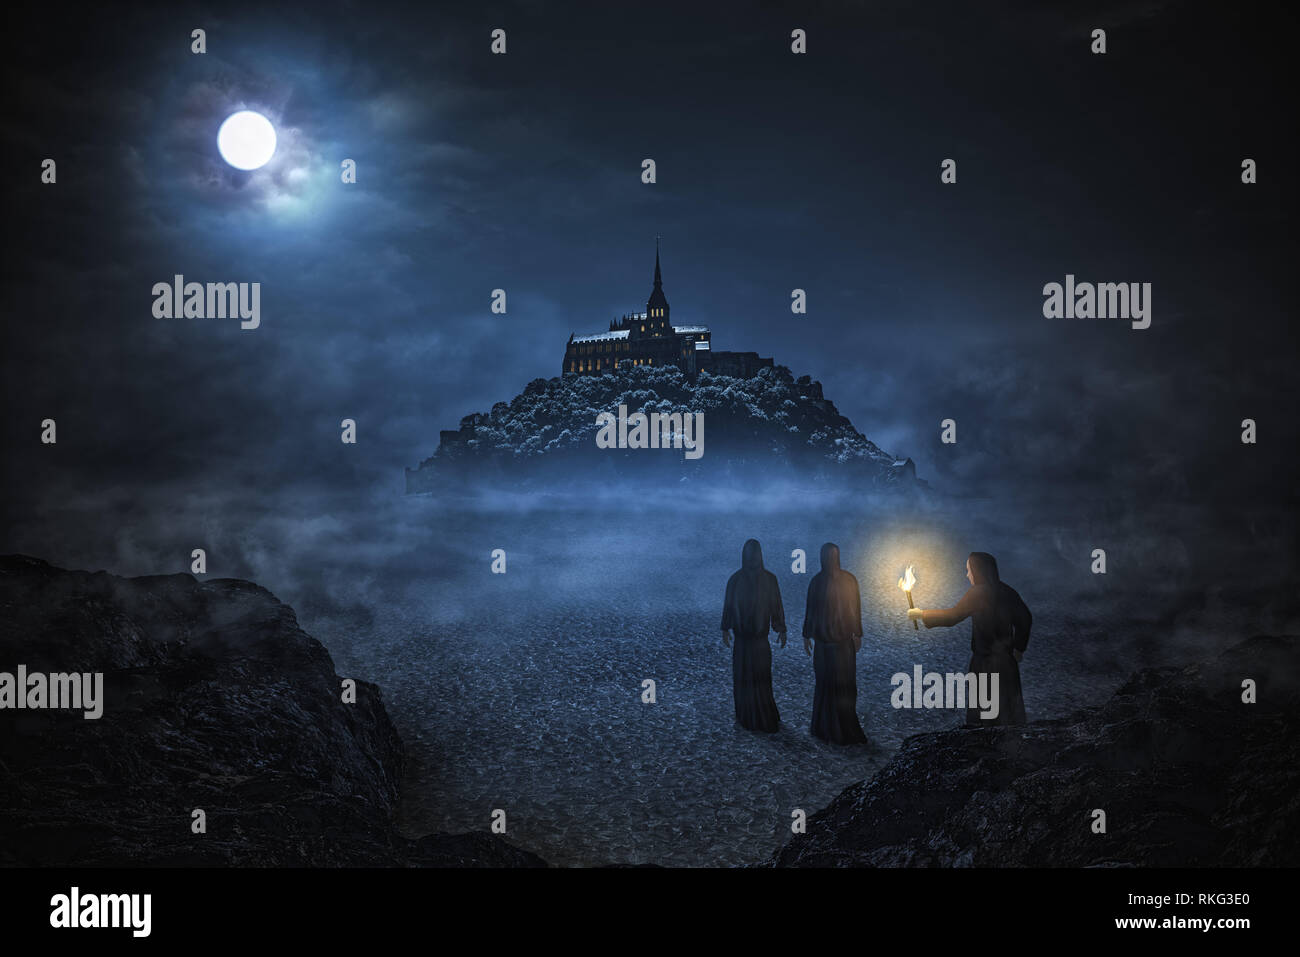 Three monks are going to the abbey Mont Saint Michel under the night sky with big moon. Matte painting. Stock Photo